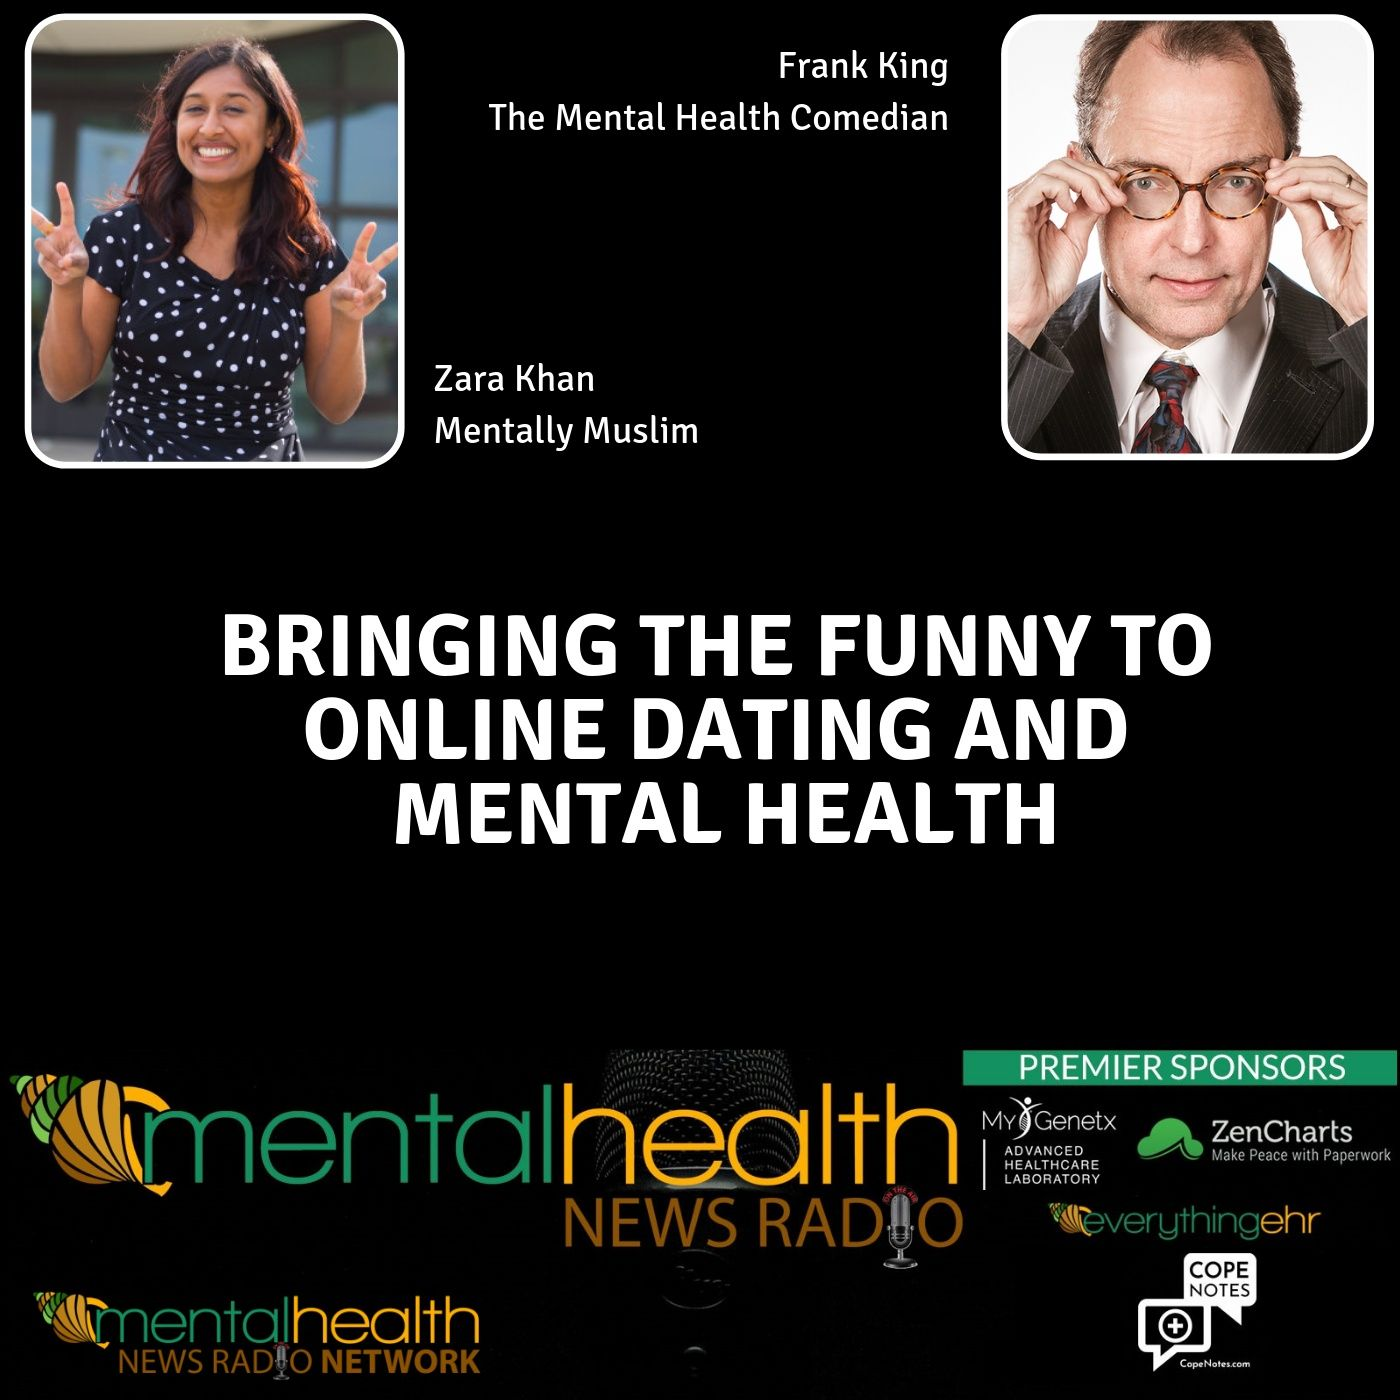 Mental Health News Radio - Bringing the Funny to Online Dating and Mental Health